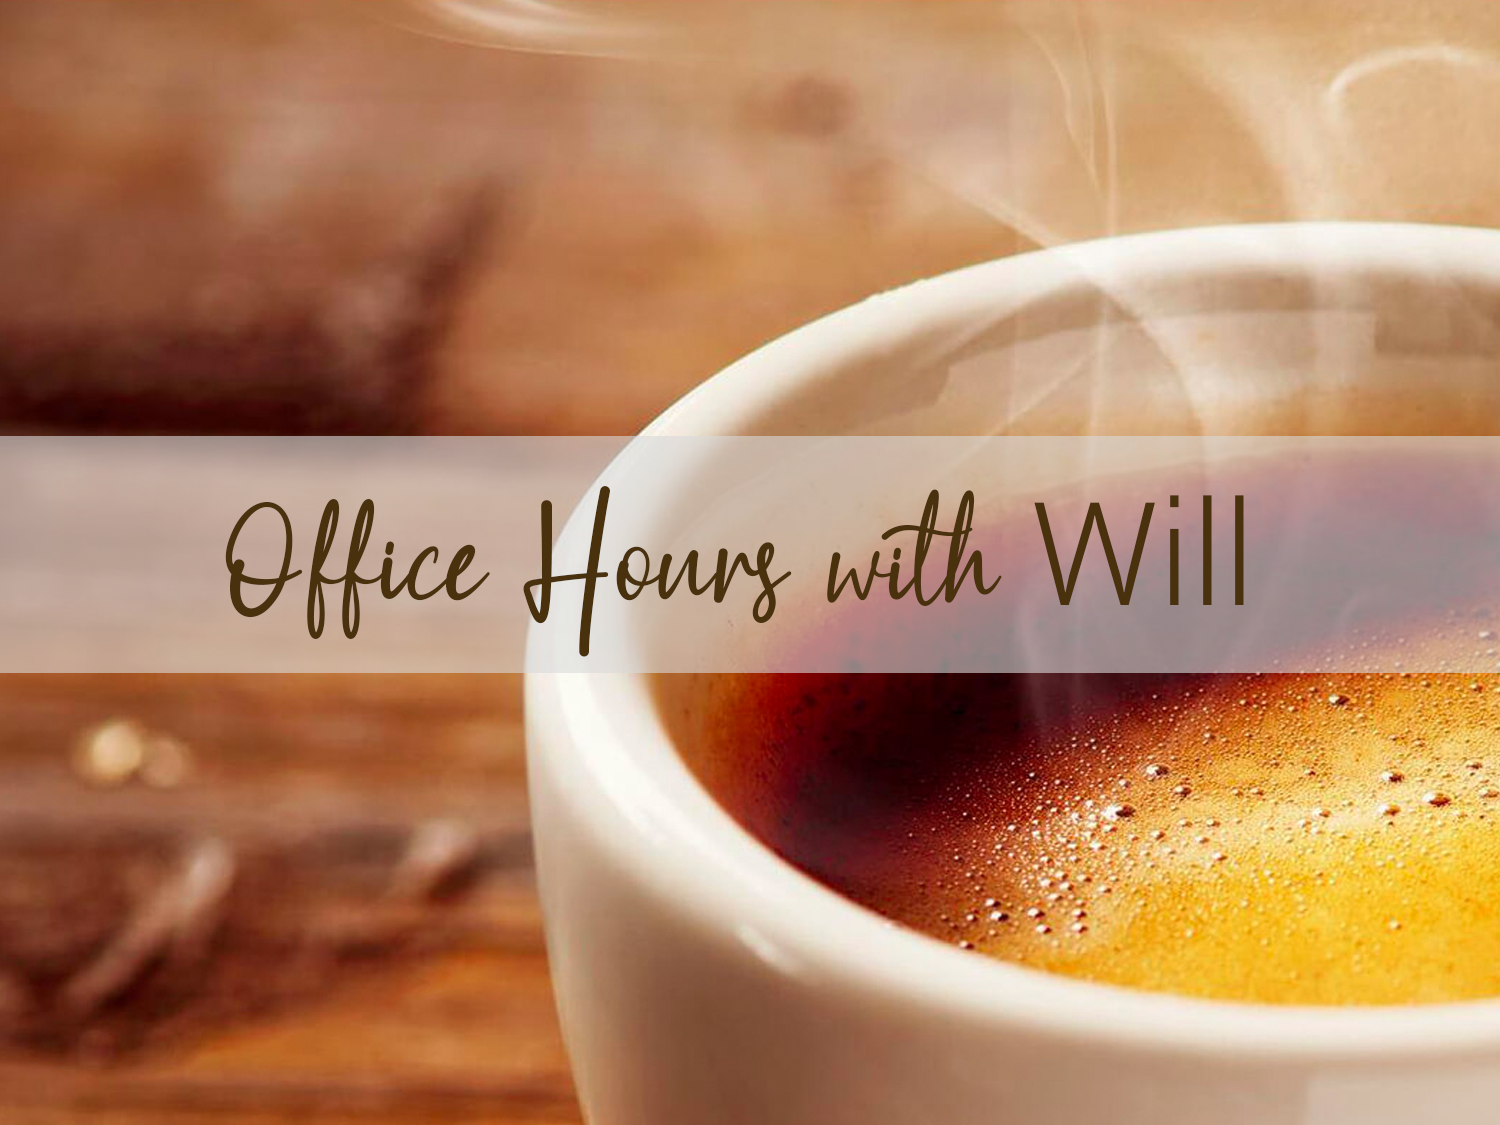 Office Hours with Will - If you have questions about Christianity, Christian living or just want to talk, you can schedule a time to connect with Will! Click here to schedule a time to connect!